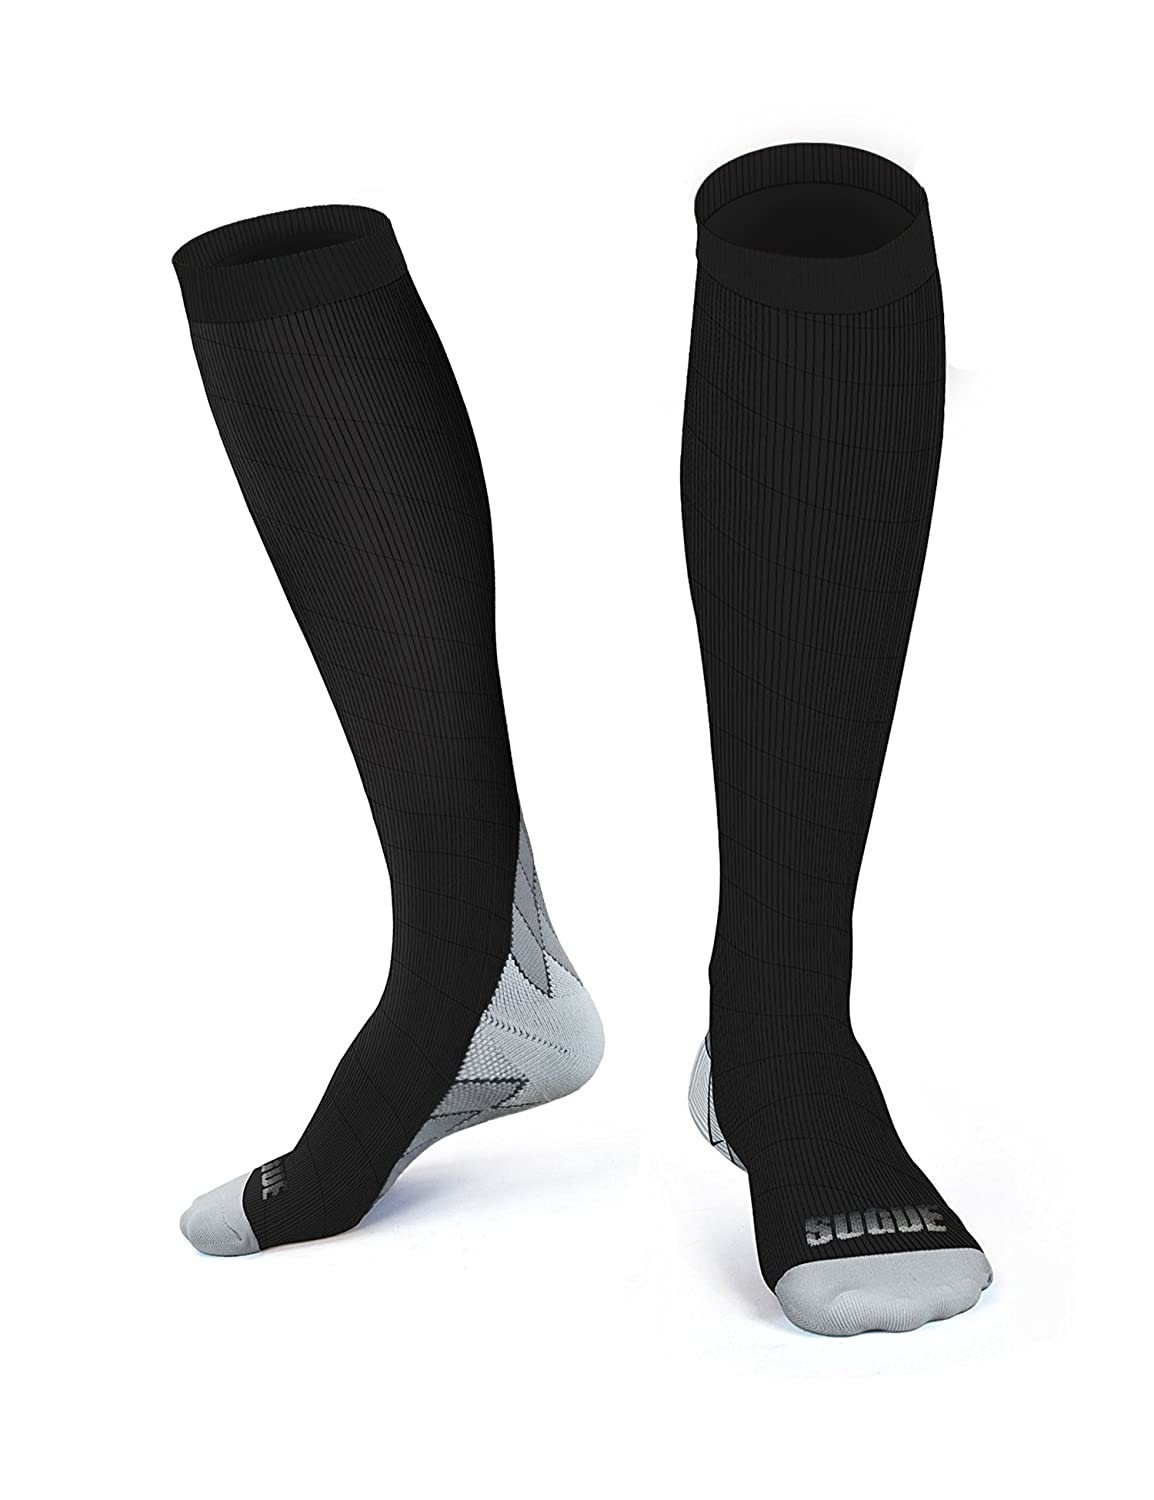 3e51e02a3dad7 SUGUE Compression Socks (1 Pair) 20-30 mmHg for Women & Men - Best ...